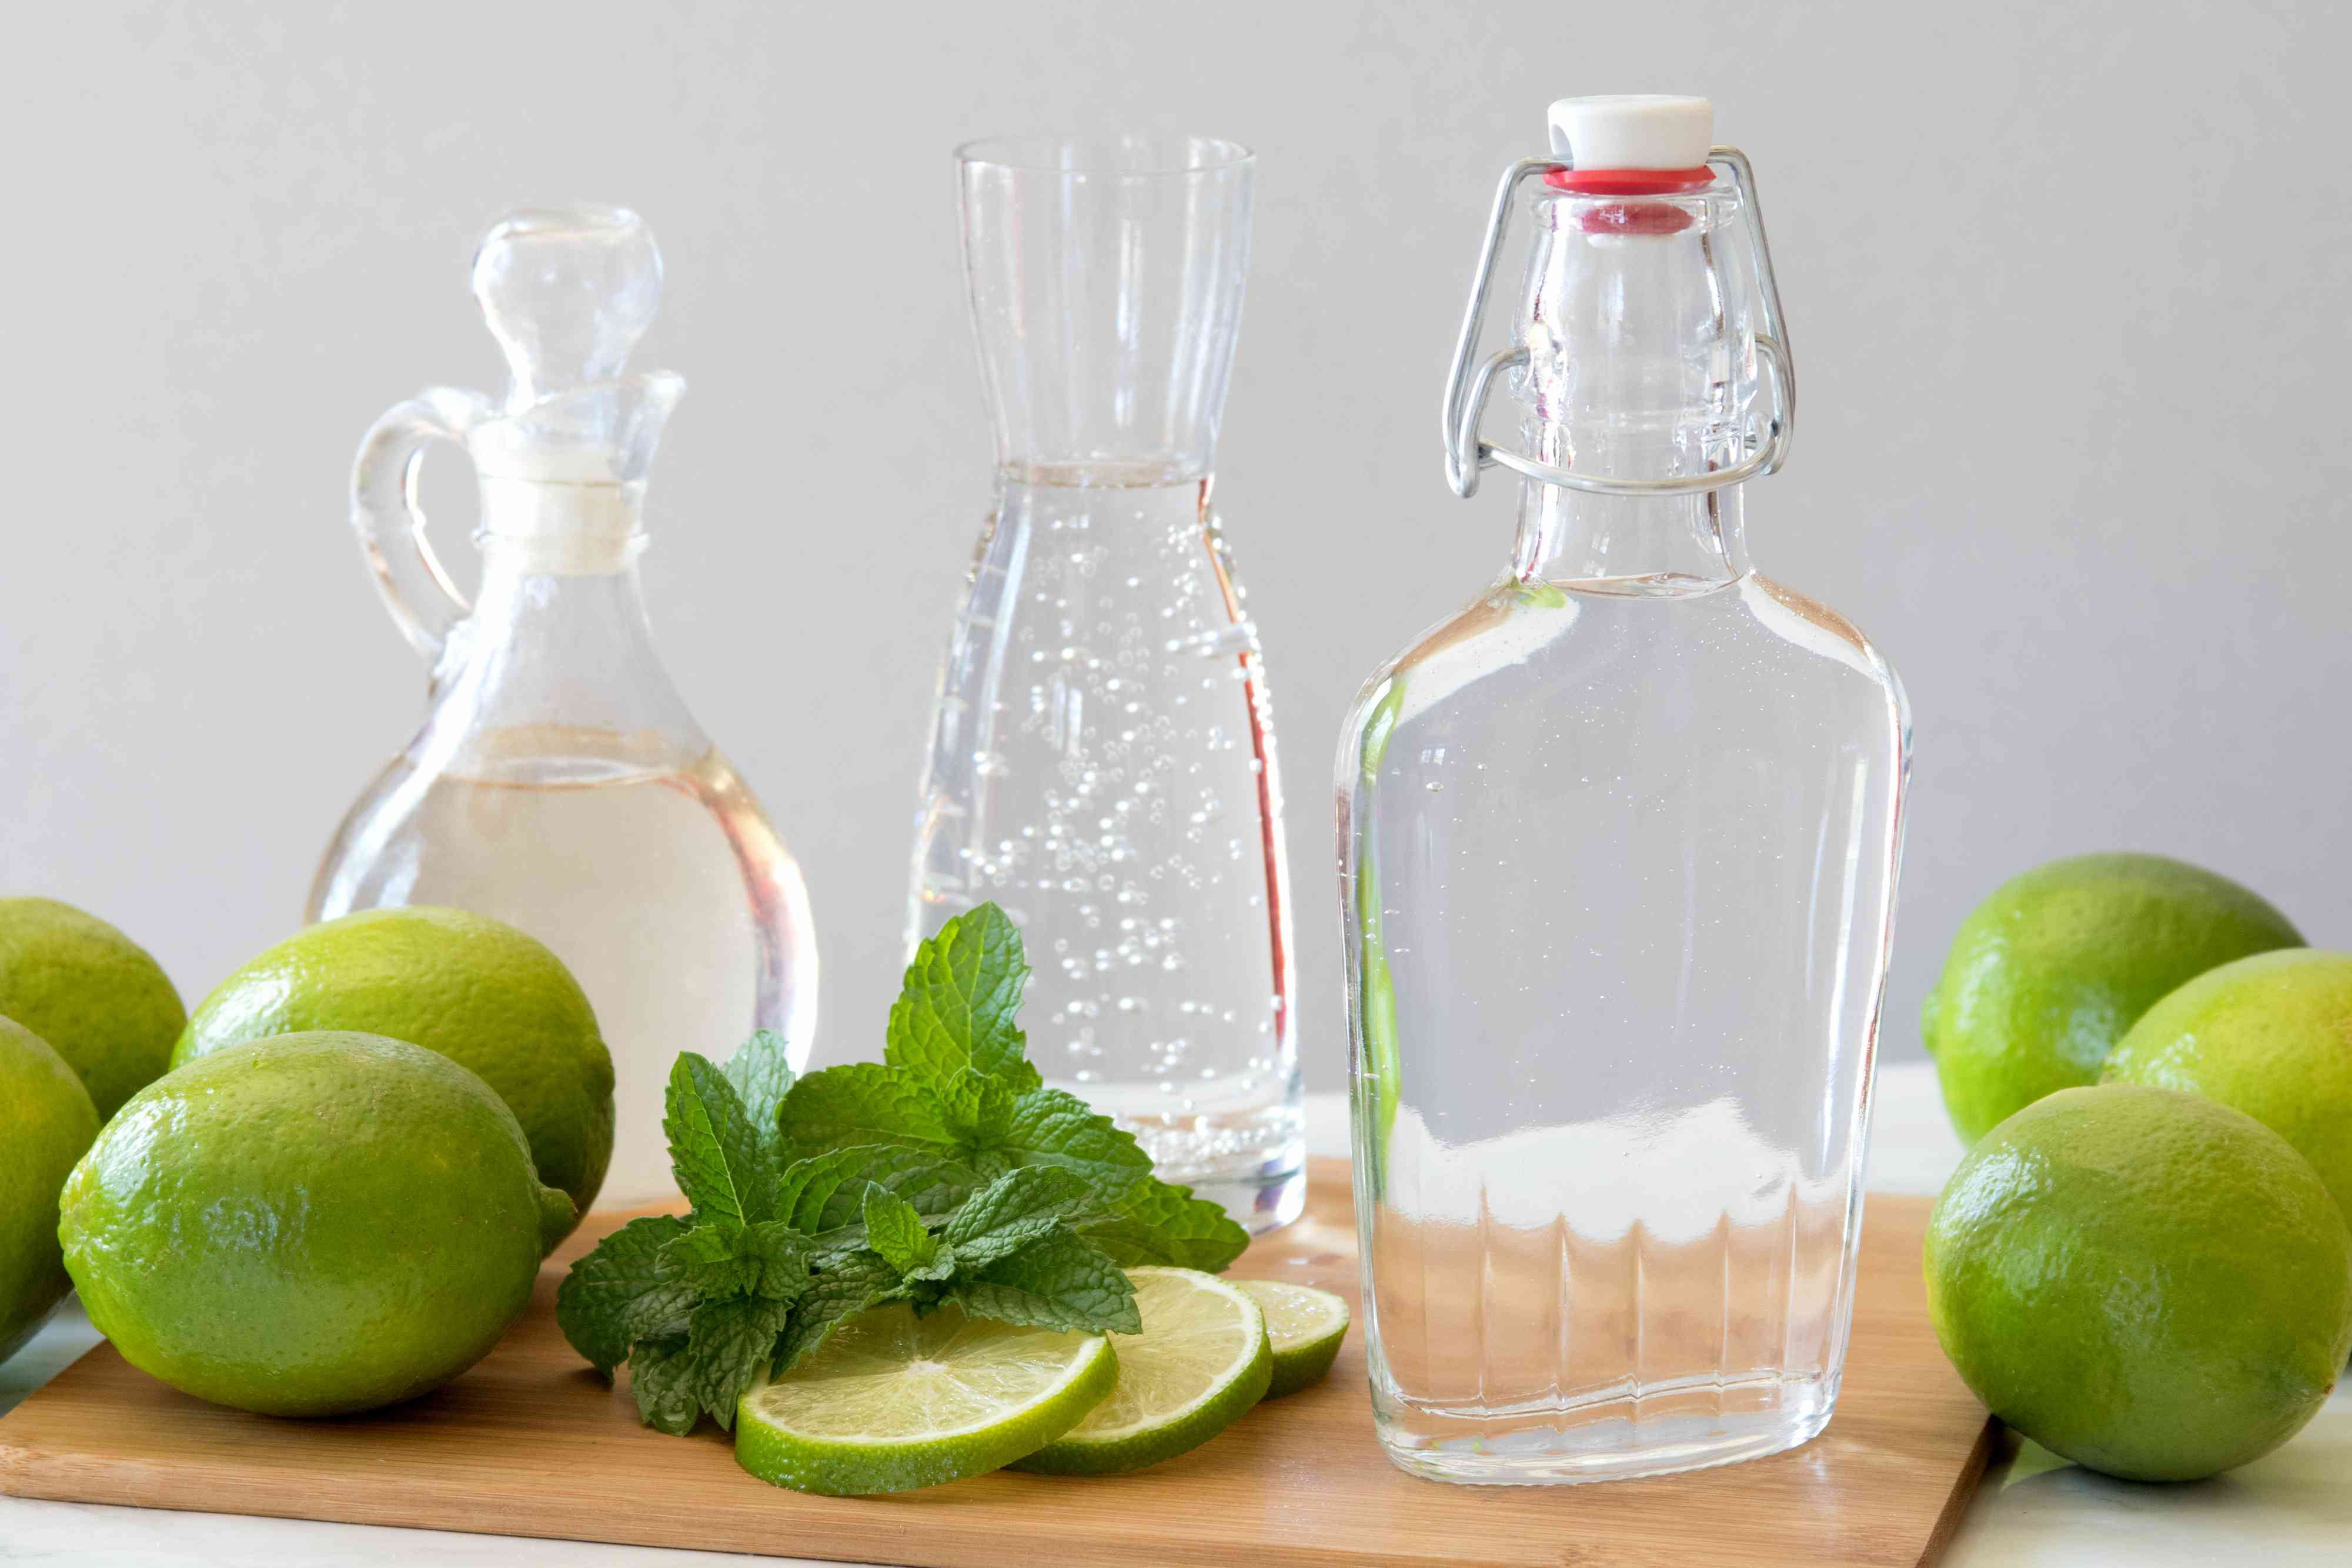 Ingredients for a Pitcher Mojitos